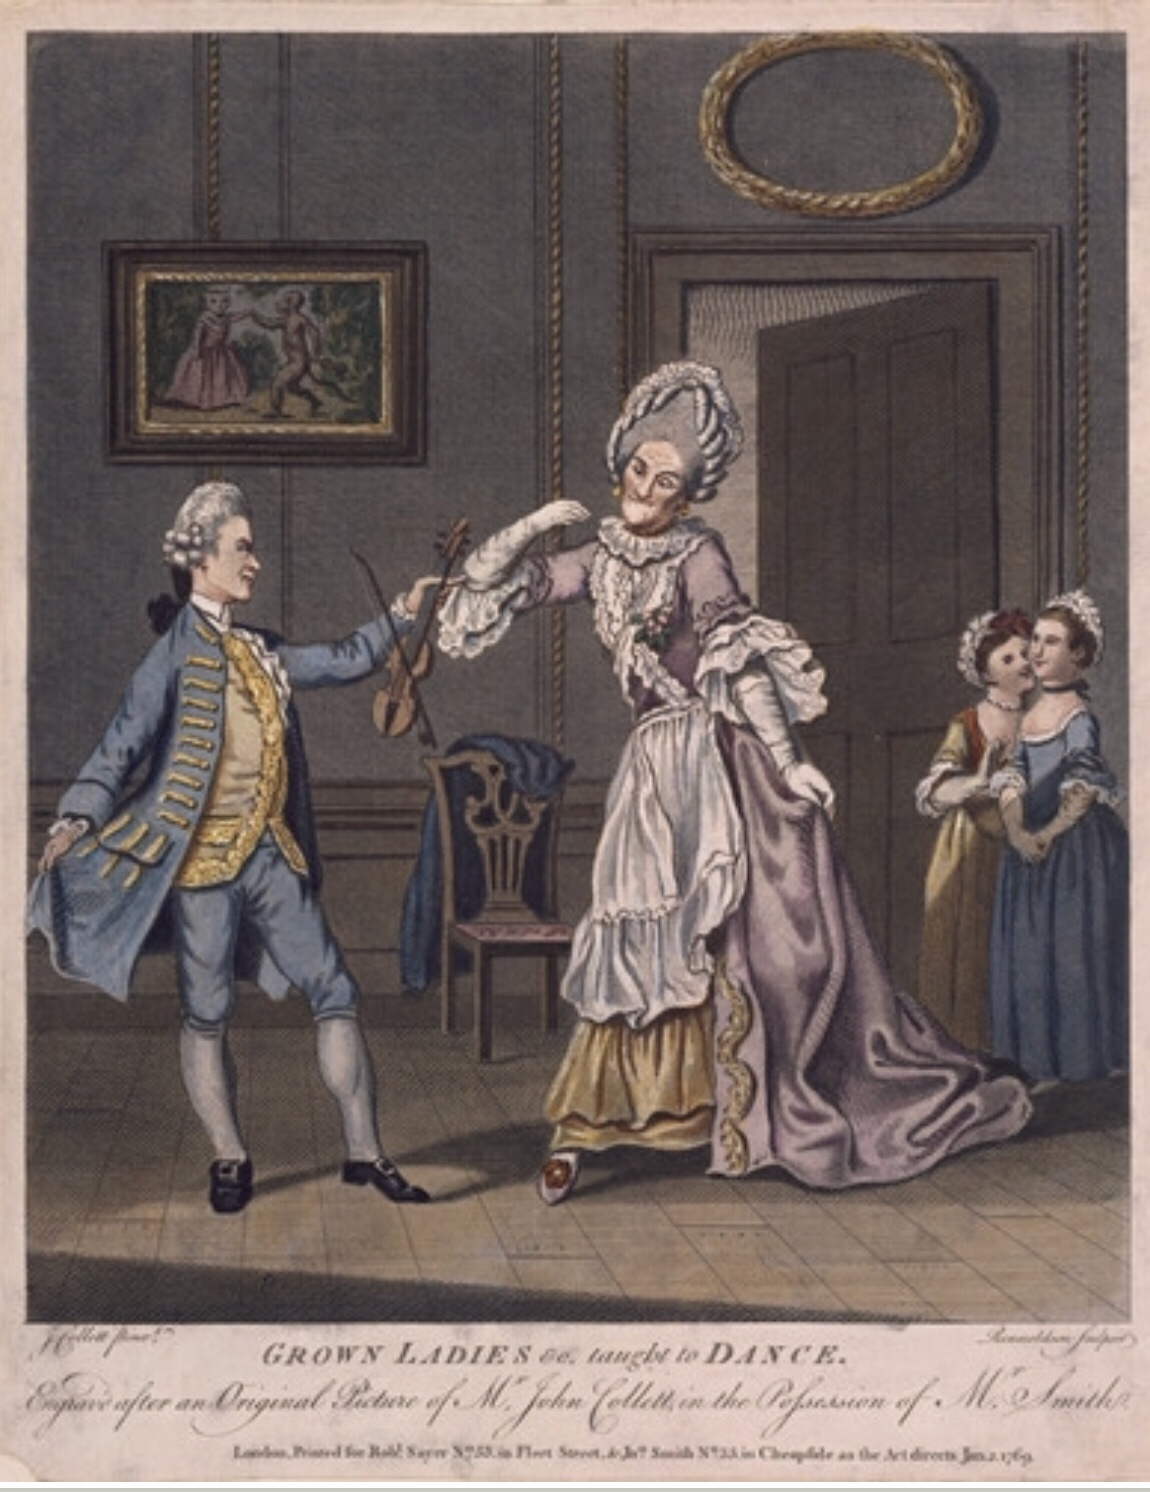 Finding love at the Dance Assemblies Nassau 1797